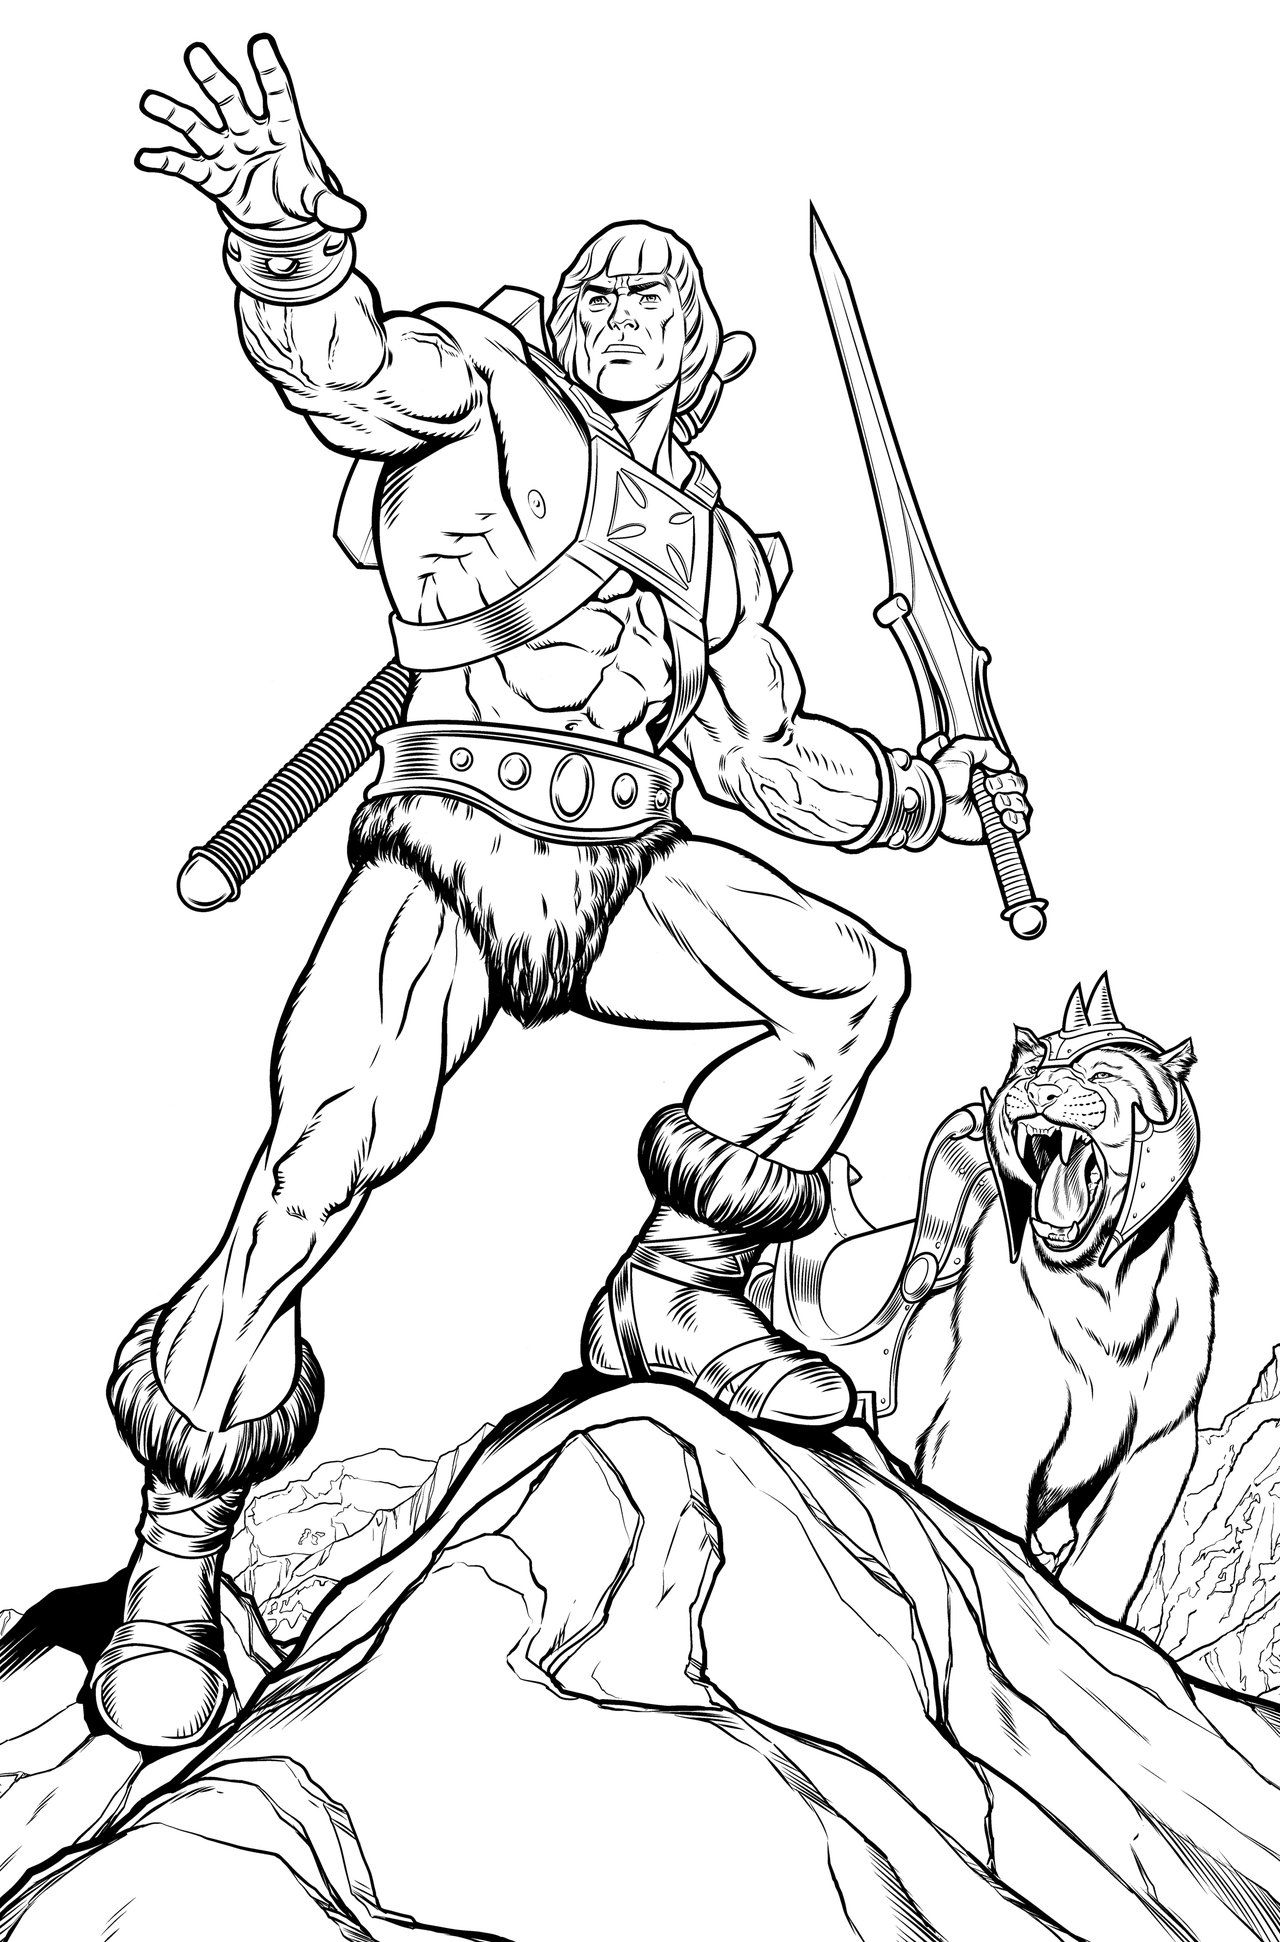 Whitman hot wheels coloring book - He Man By Angryrooster On Deviantart Adult Coloringcoloring Bookscoloring